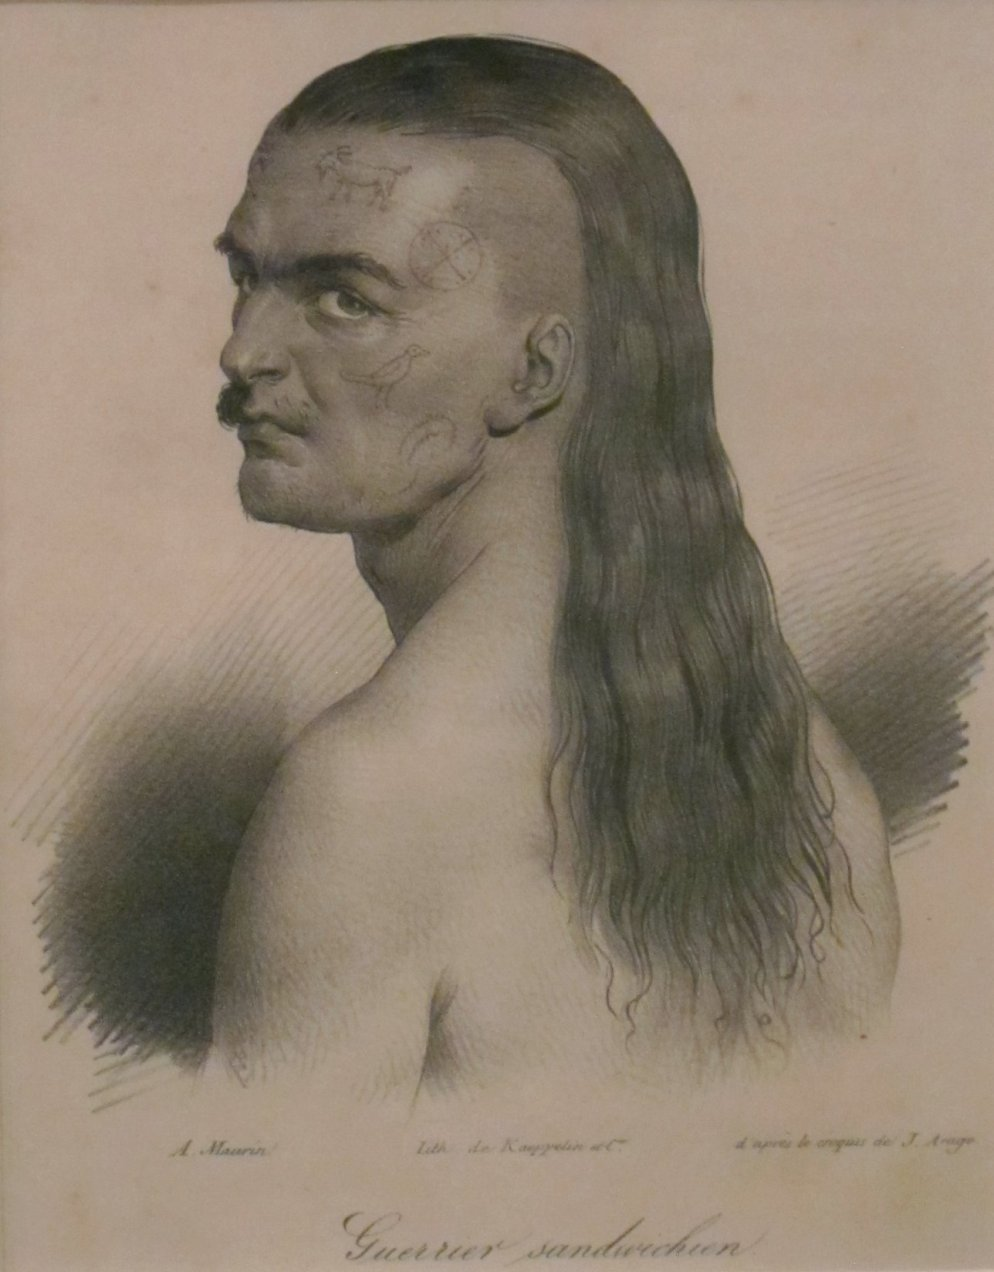 One of Kamehameha's chieftains, after a drawing by Jacques Arago via  Susanna Moore